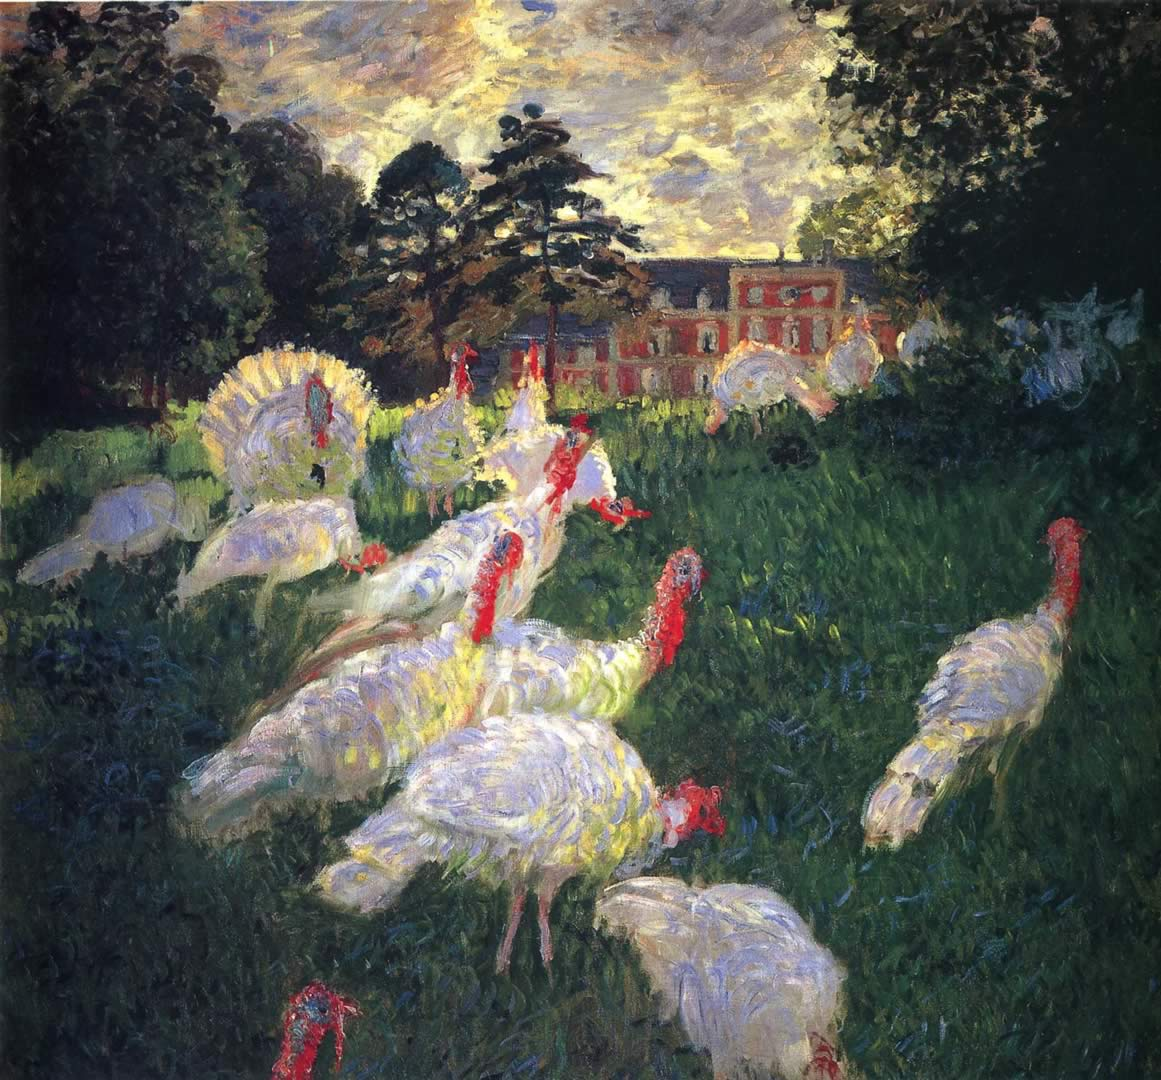 Gaggle Of Chickens And Hens